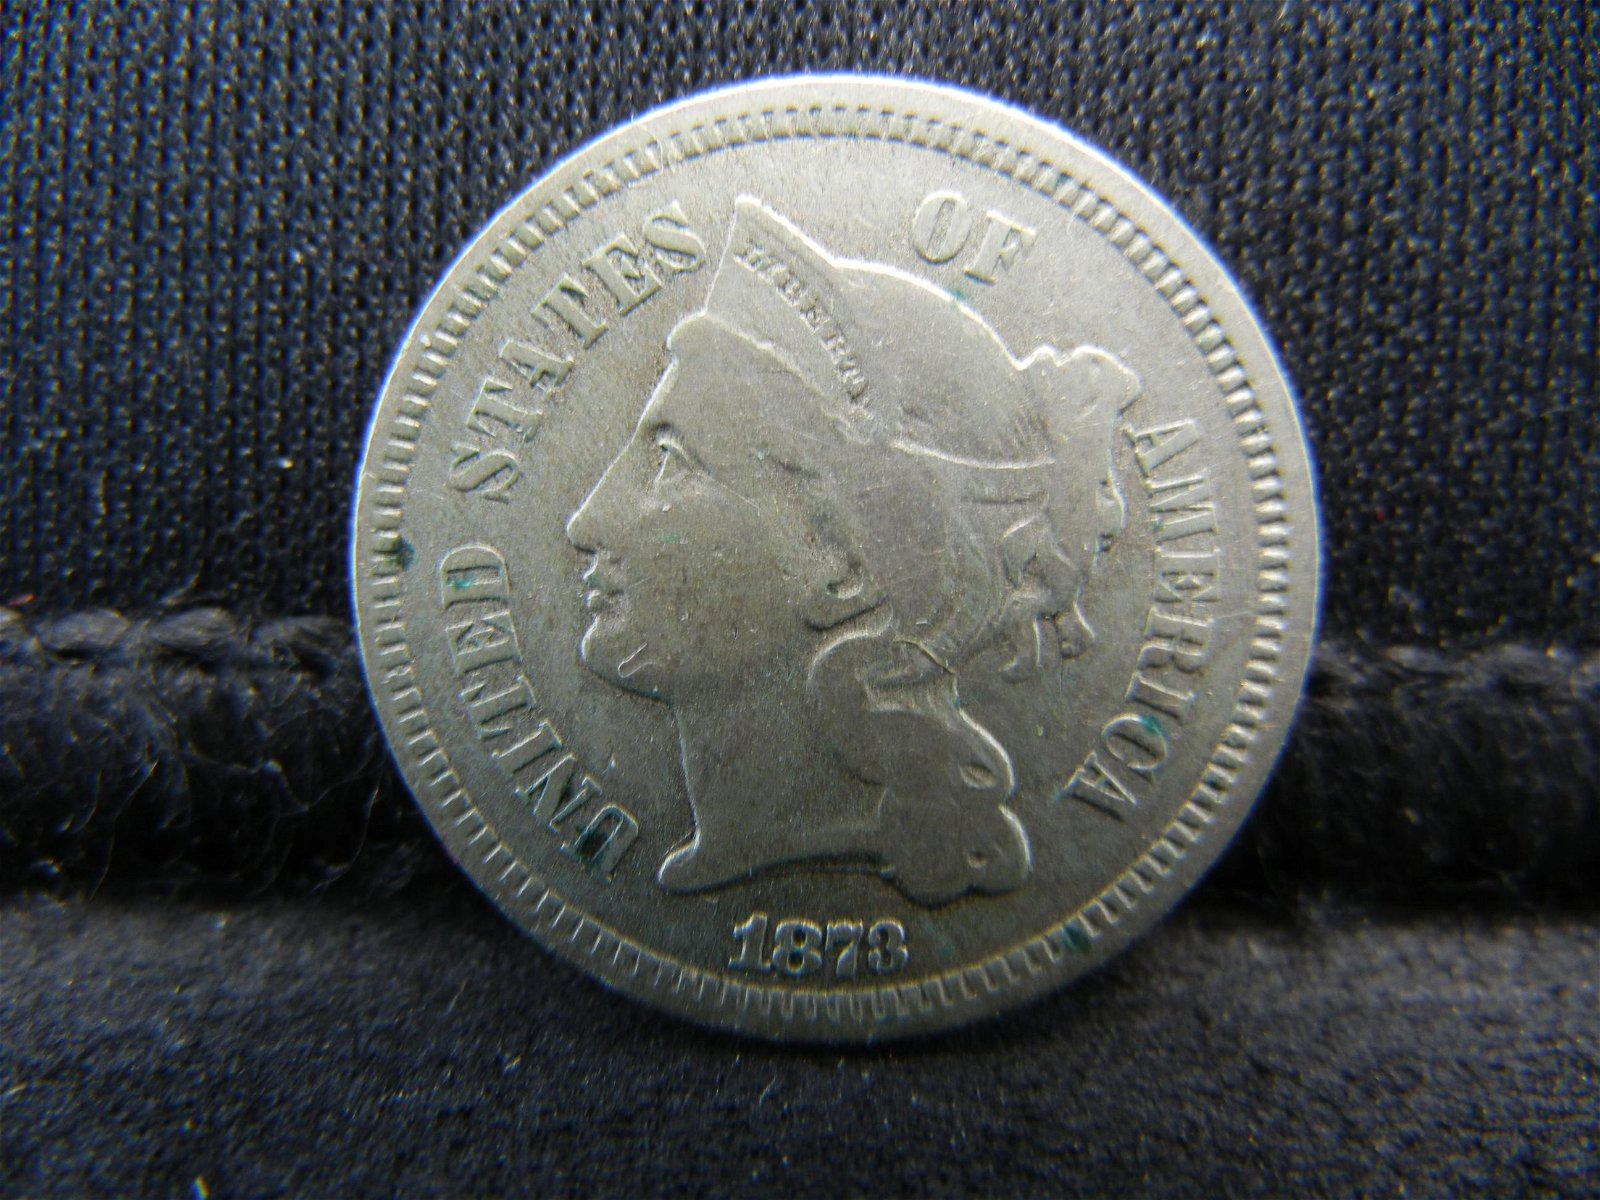 1873 United States Three 3 Cent Nickel